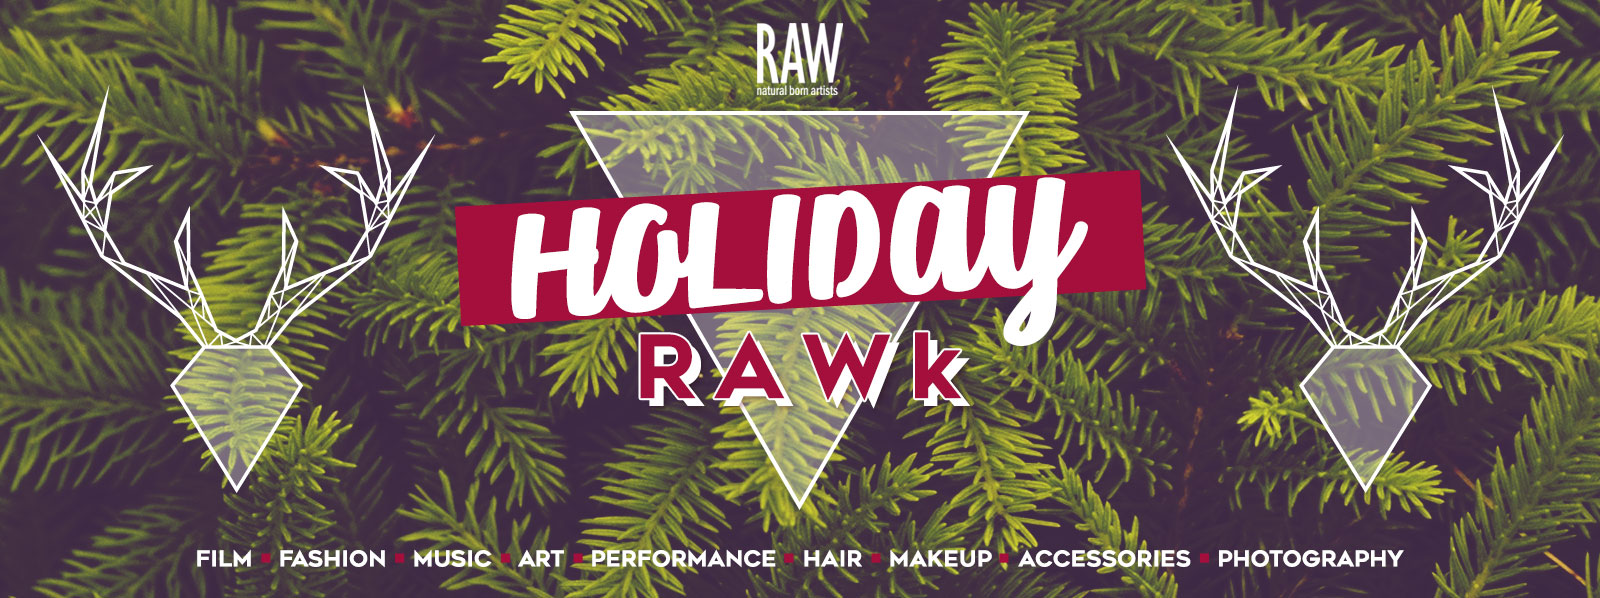 RAW Vancouver presents Holiday RAWk 2016